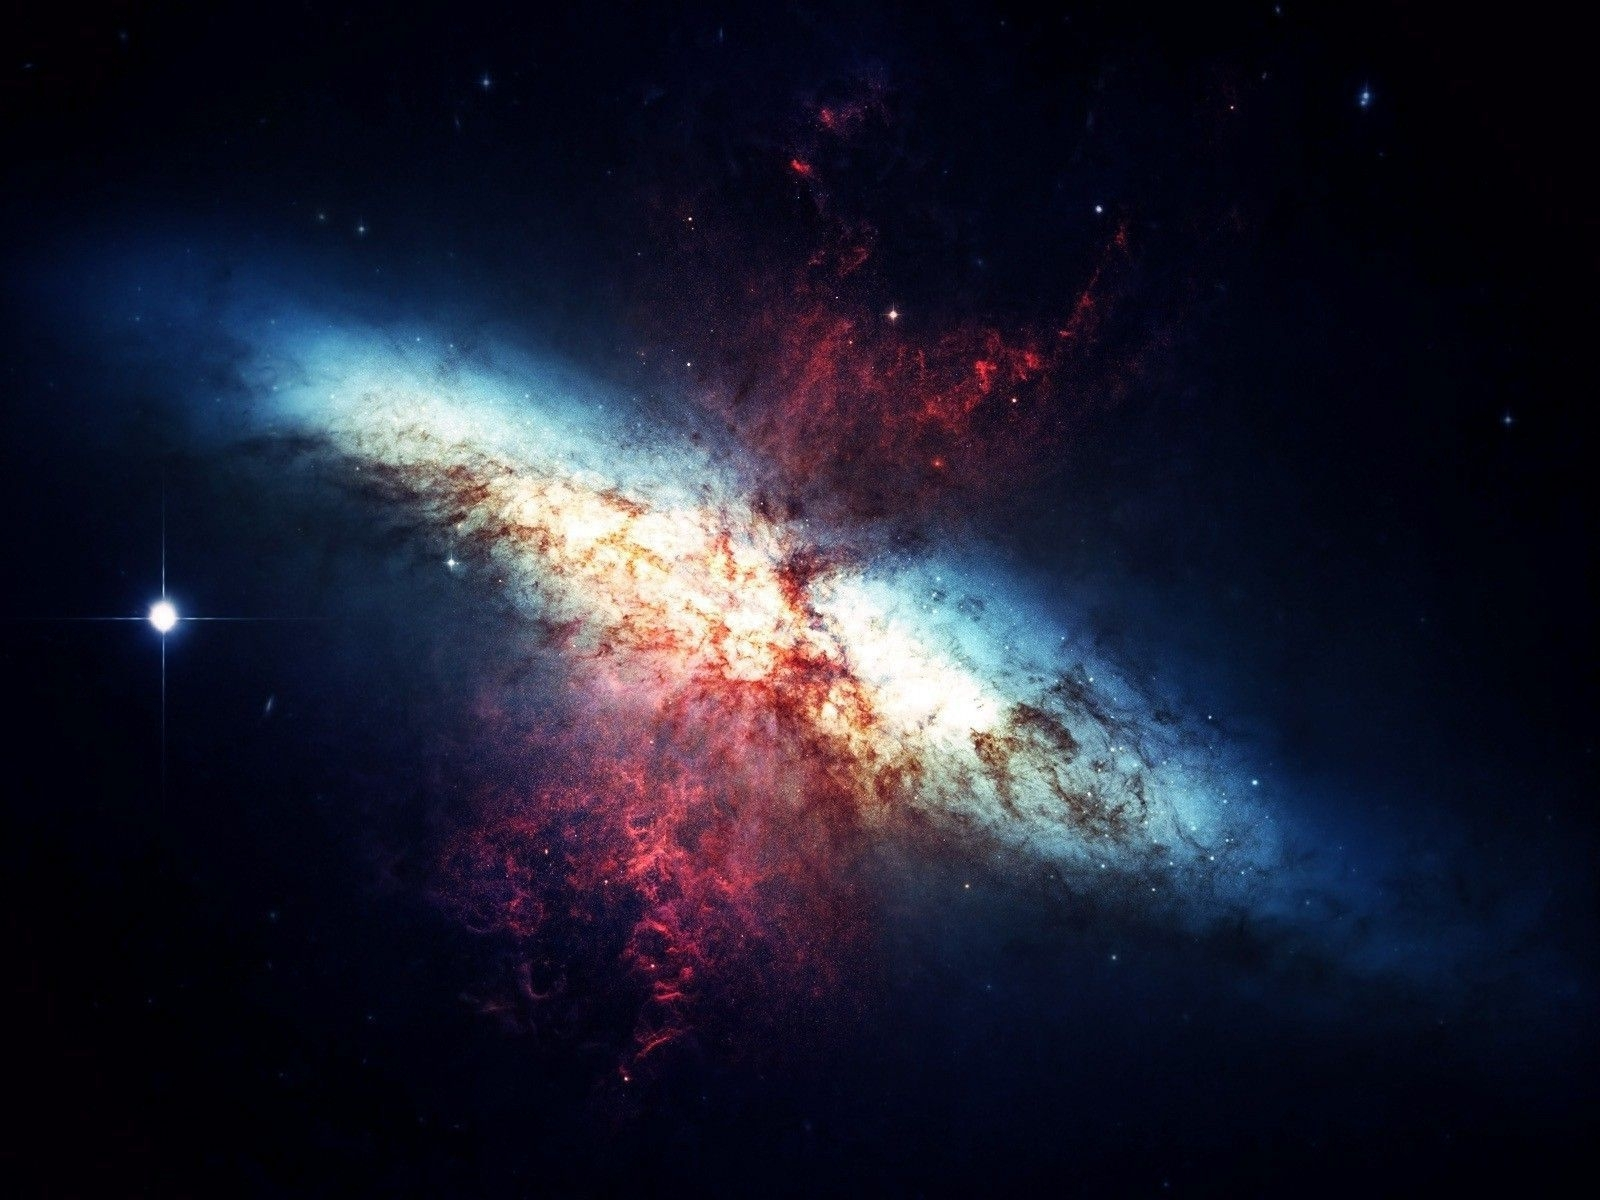 Galaxy Space Wallpaper For Android: [49+] 3D Galaxy Wallpaper On WallpaperSafari